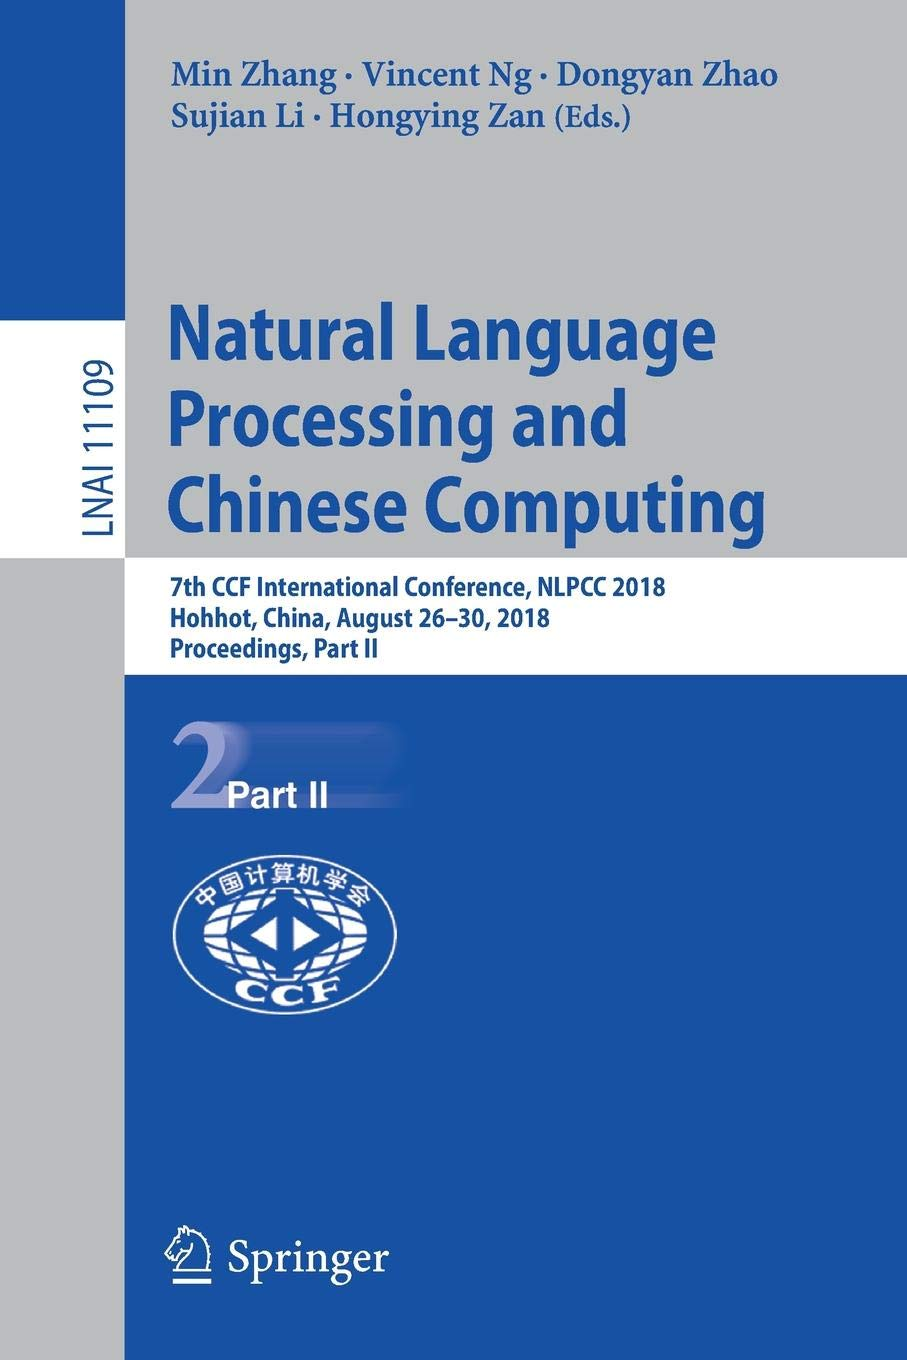 Download Natural Language Processing and Chinese Computing: 7th CCF International Conference, NLPCC 2018, Hohhot, China, August 26–30, 2018, Proceedings, Part II (Lecture Notes in Computer Science) pdf epub